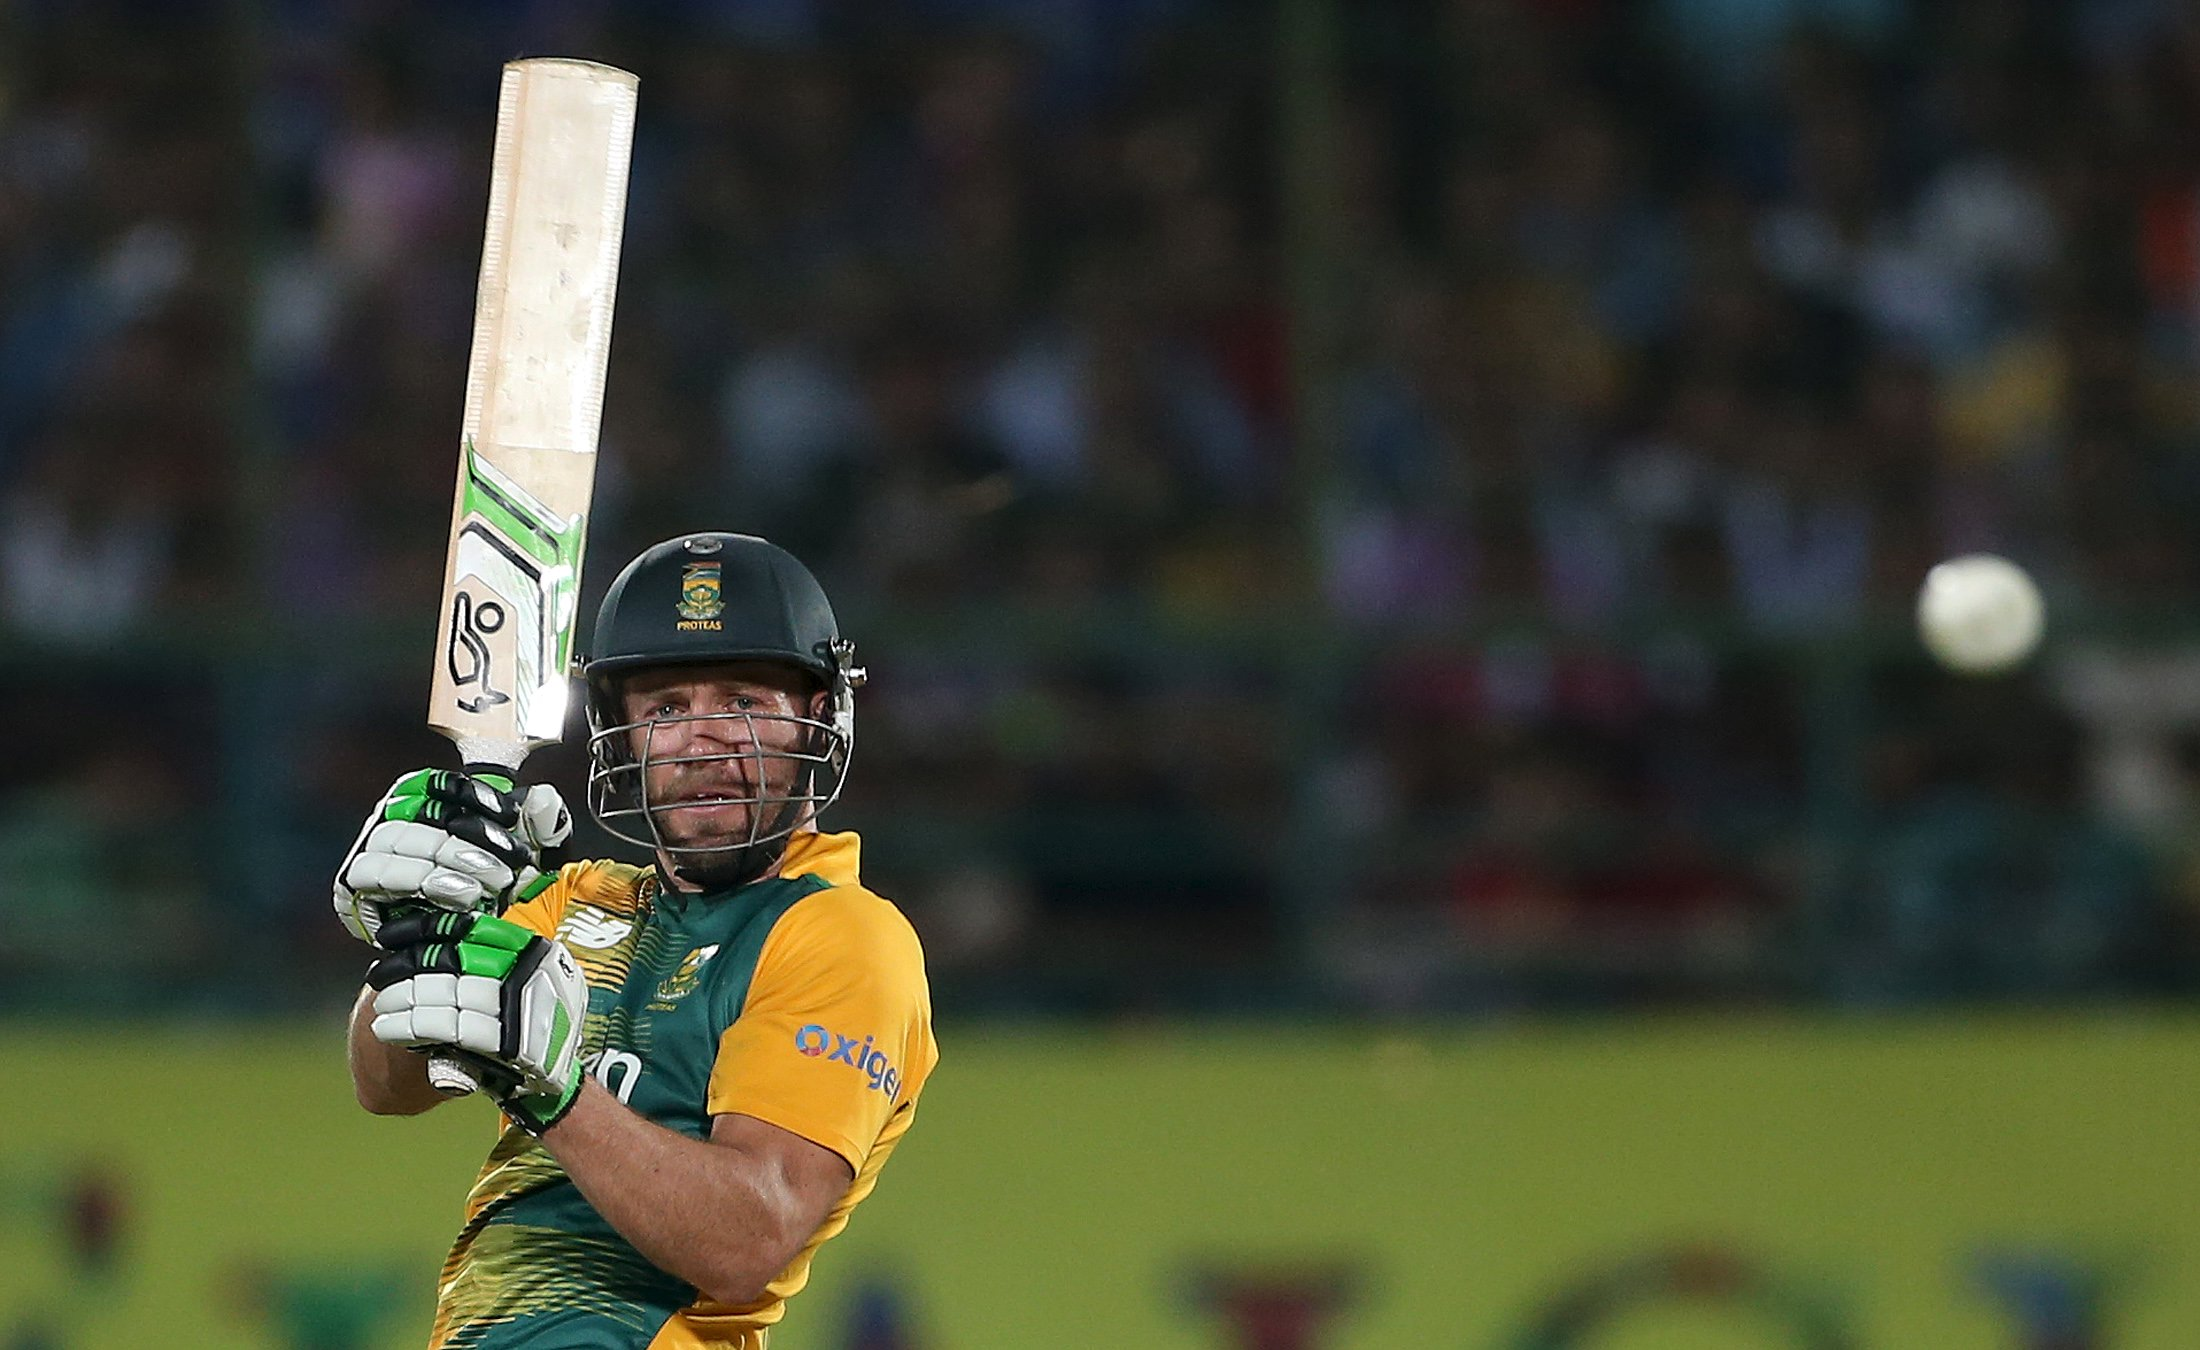 South Africa's AB de Villiers plays a shot during their first Twenty-20 cricket match against India in the northern Indian hill town of Dharamsala, India, October 2, 2015. REUTERS/Adnan Abidi